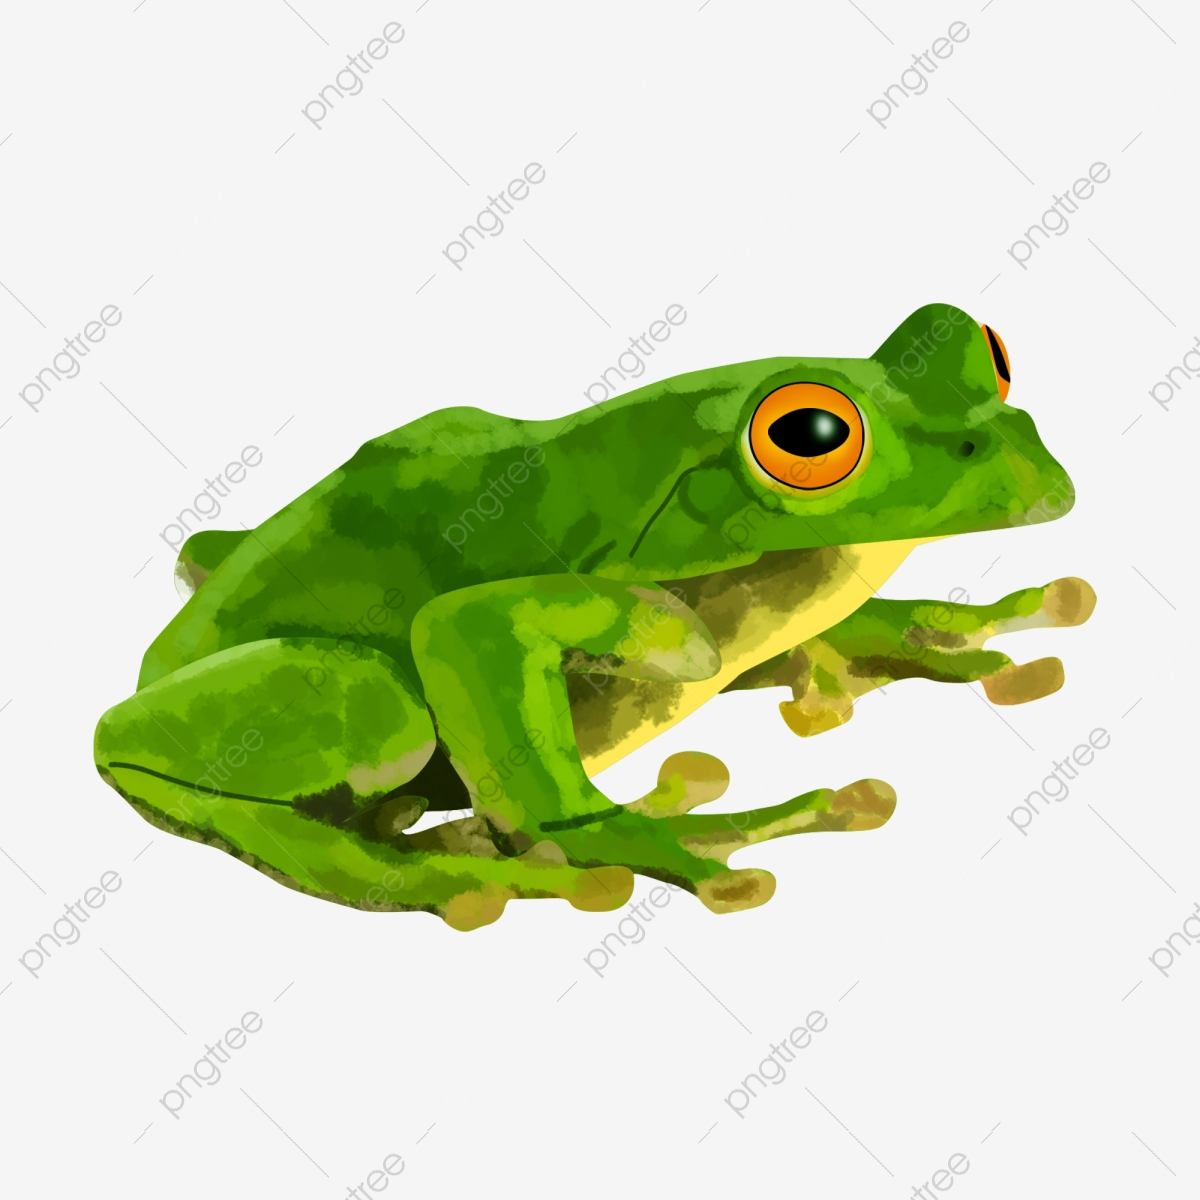 Shrub Frog Png - Green Frog, Frog, Toy, Green PNG Transparent Clipart Image and PSD ...